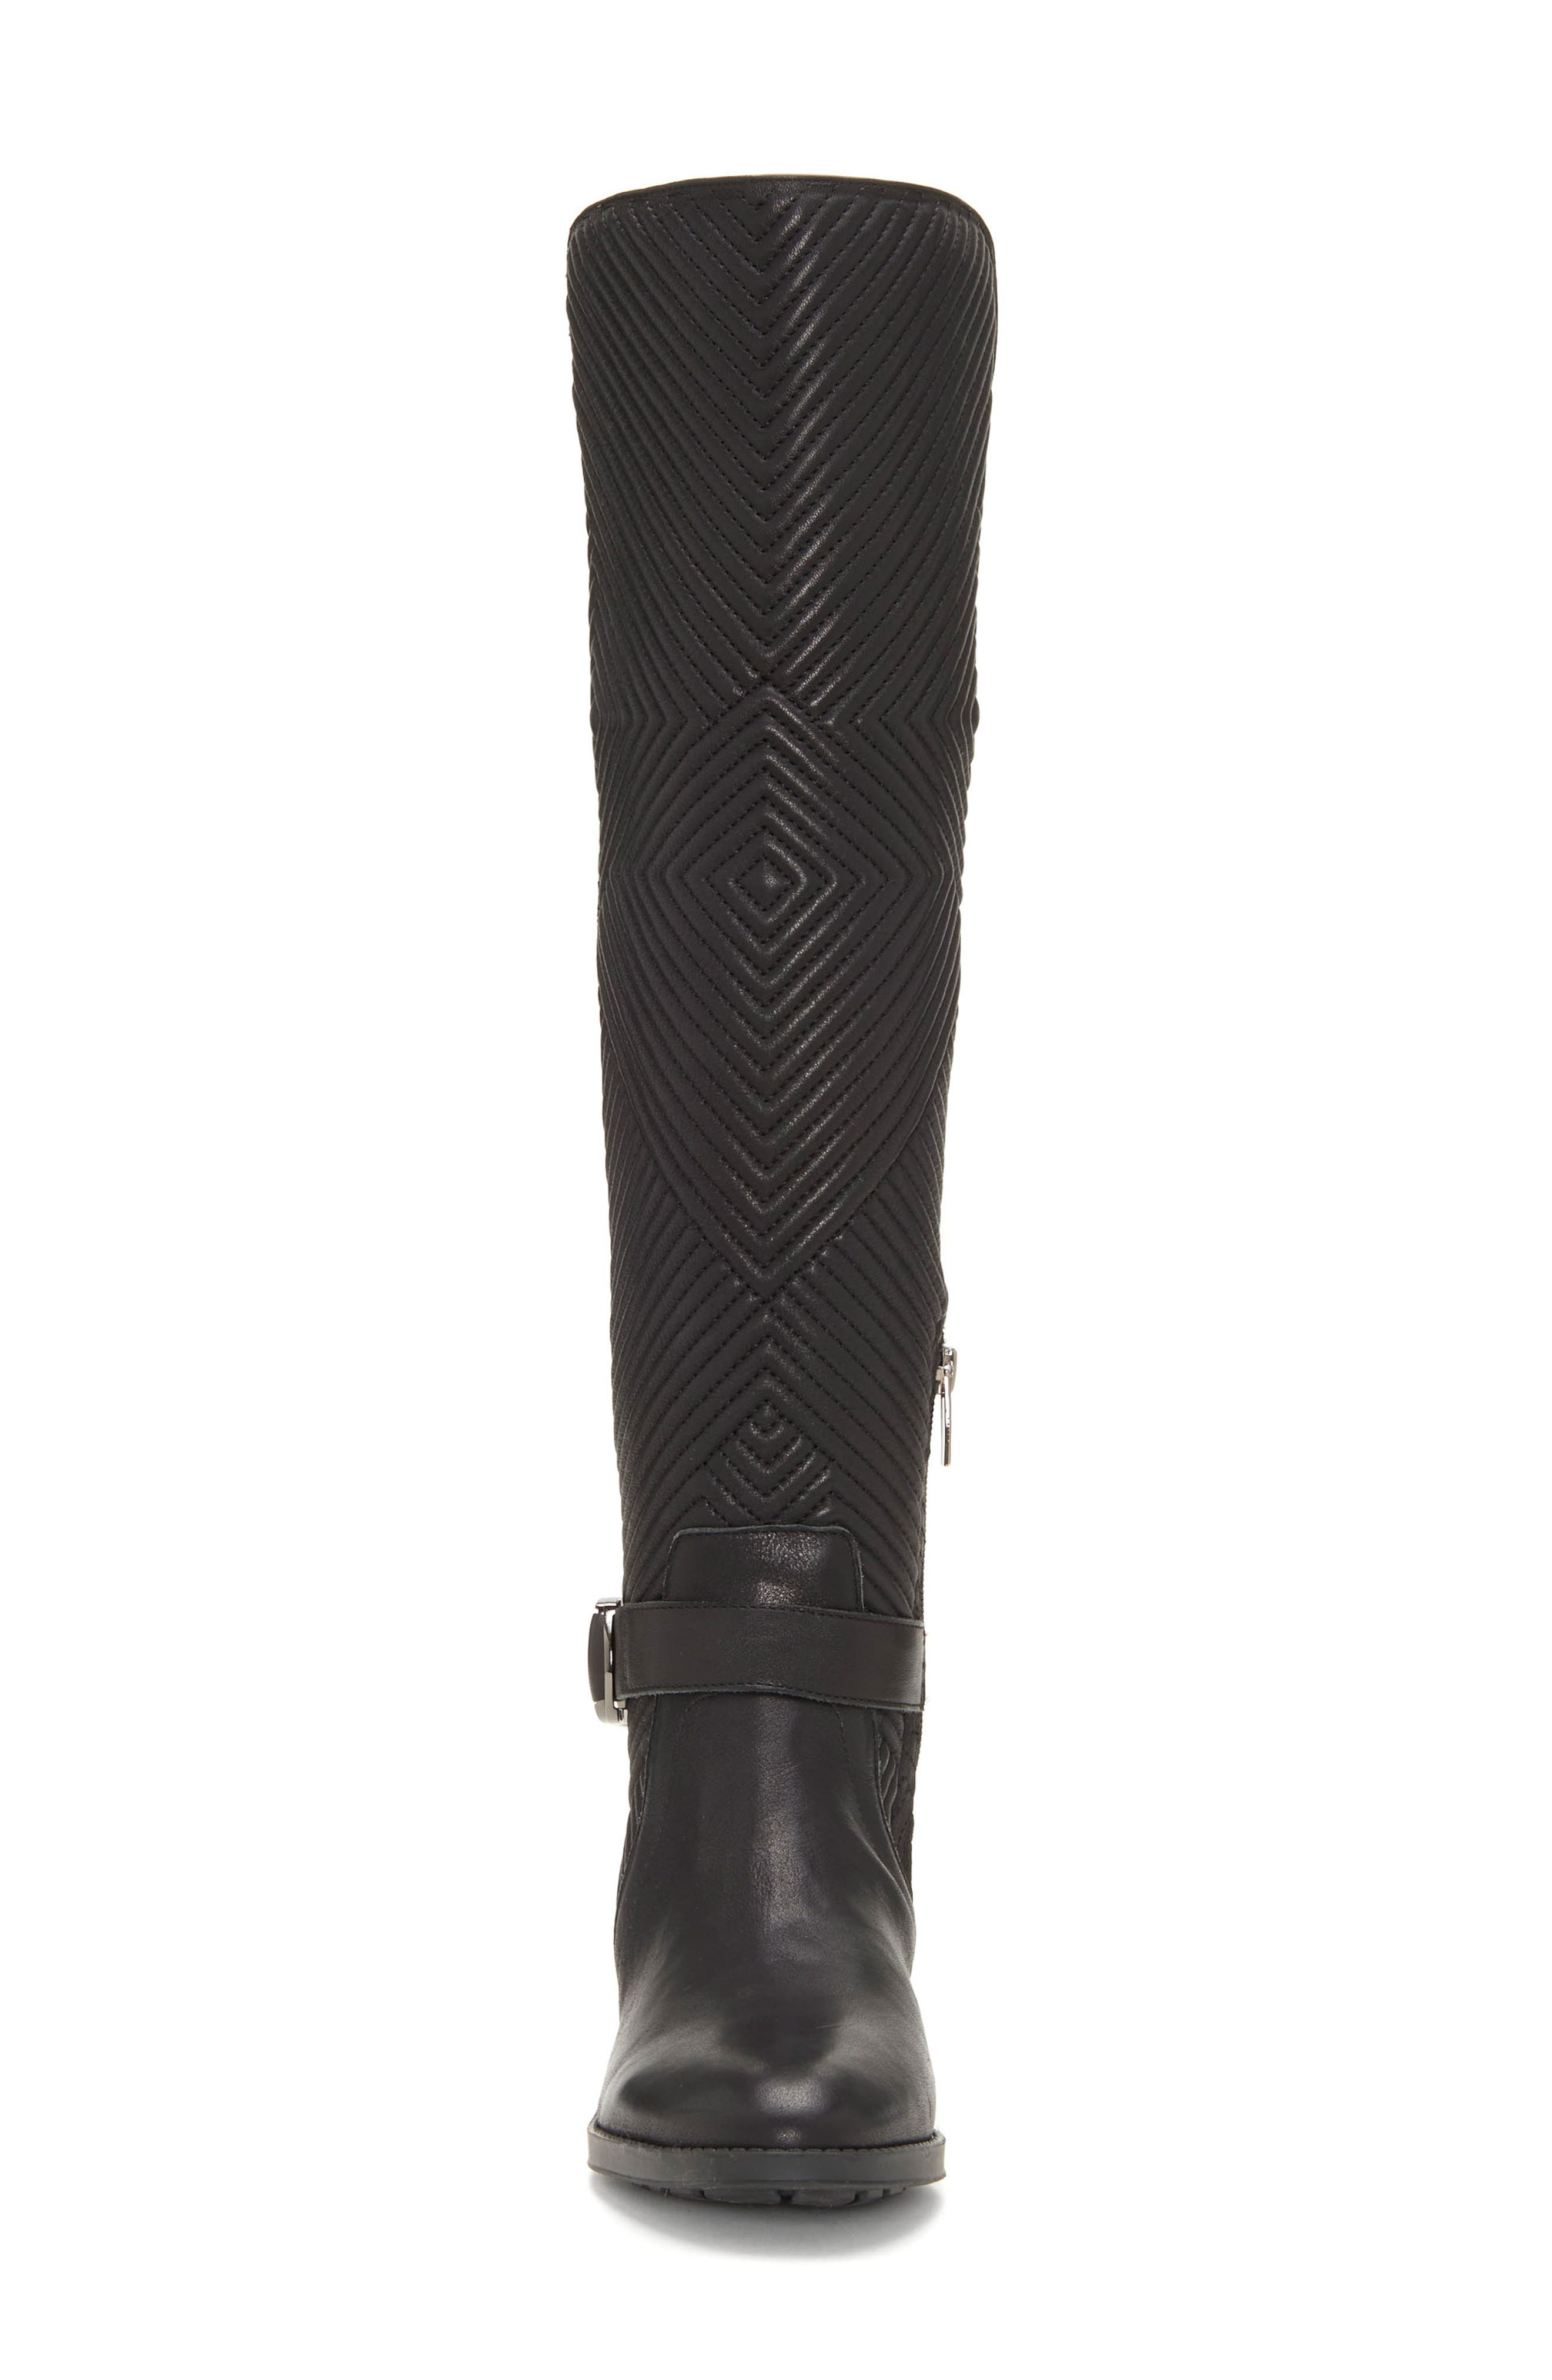 Pordalia Over-the-Knee Boot,                             Alternate thumbnail 4, color,                             BLACK LEATHER WIDE